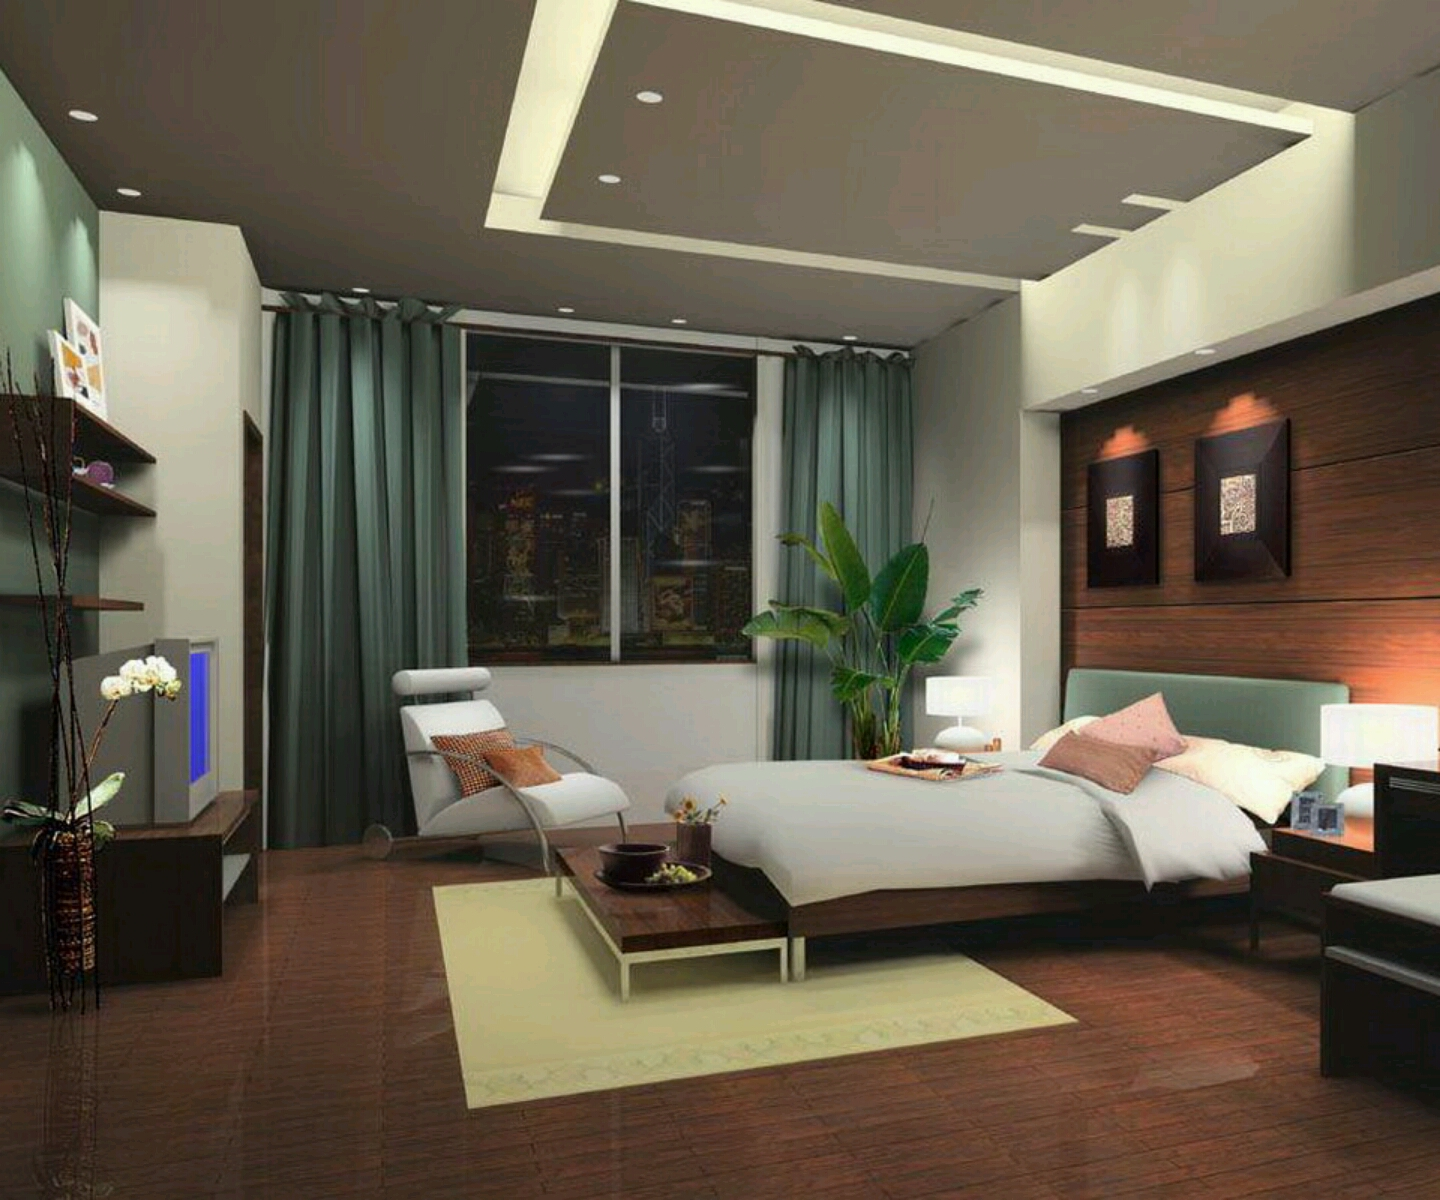 New home designs latest modern bedrooms designs best ideas Latest small bedroom designs